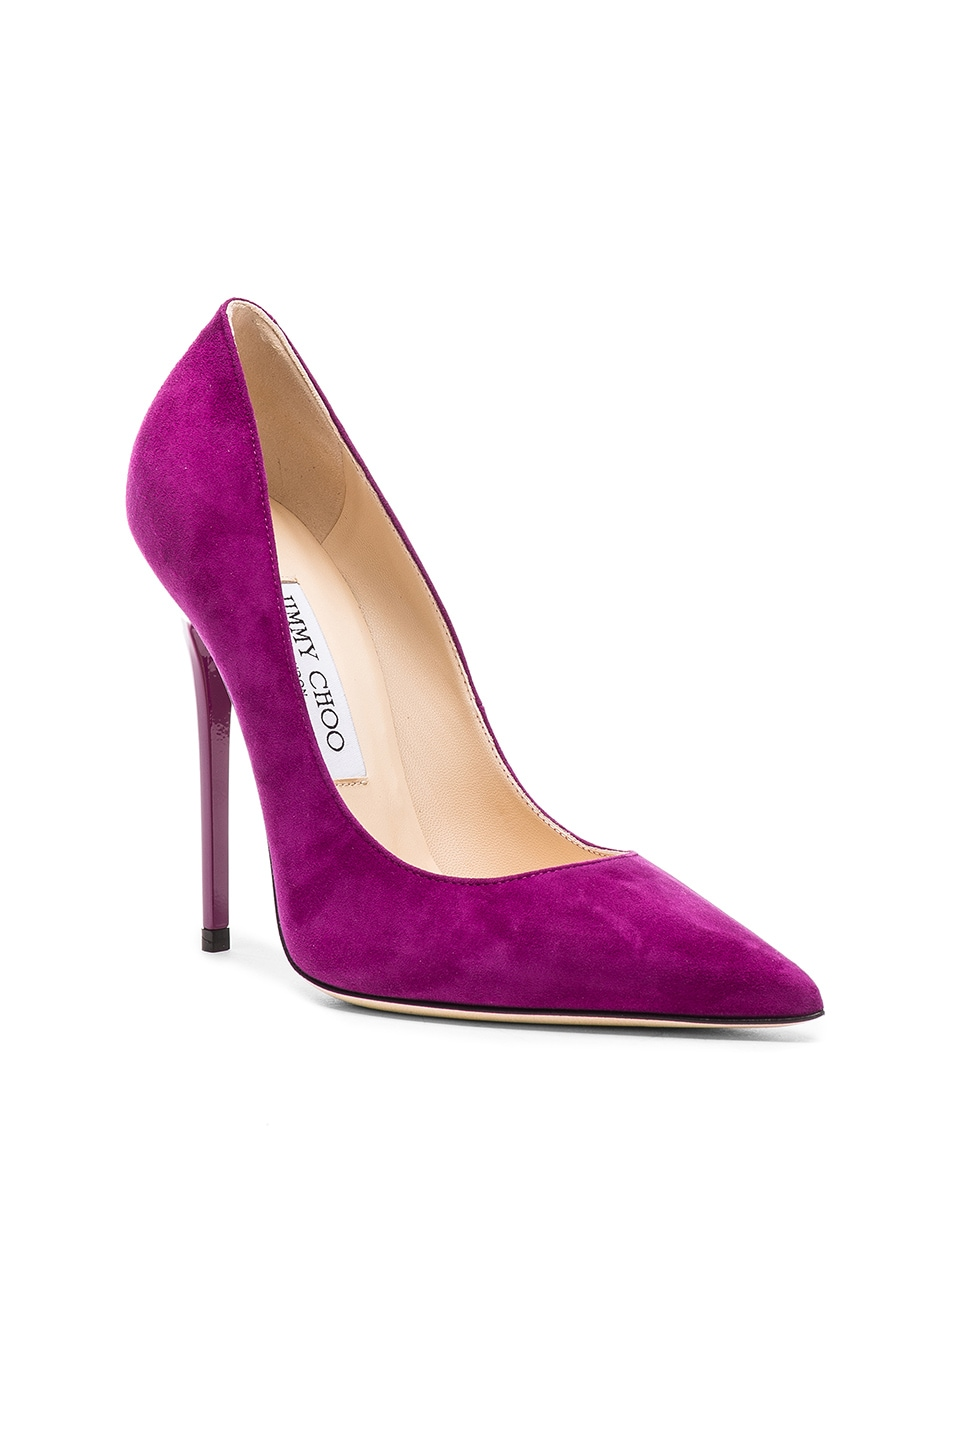 Image 2 of Jimmy Choo Suede Anouk Heels in Madeline